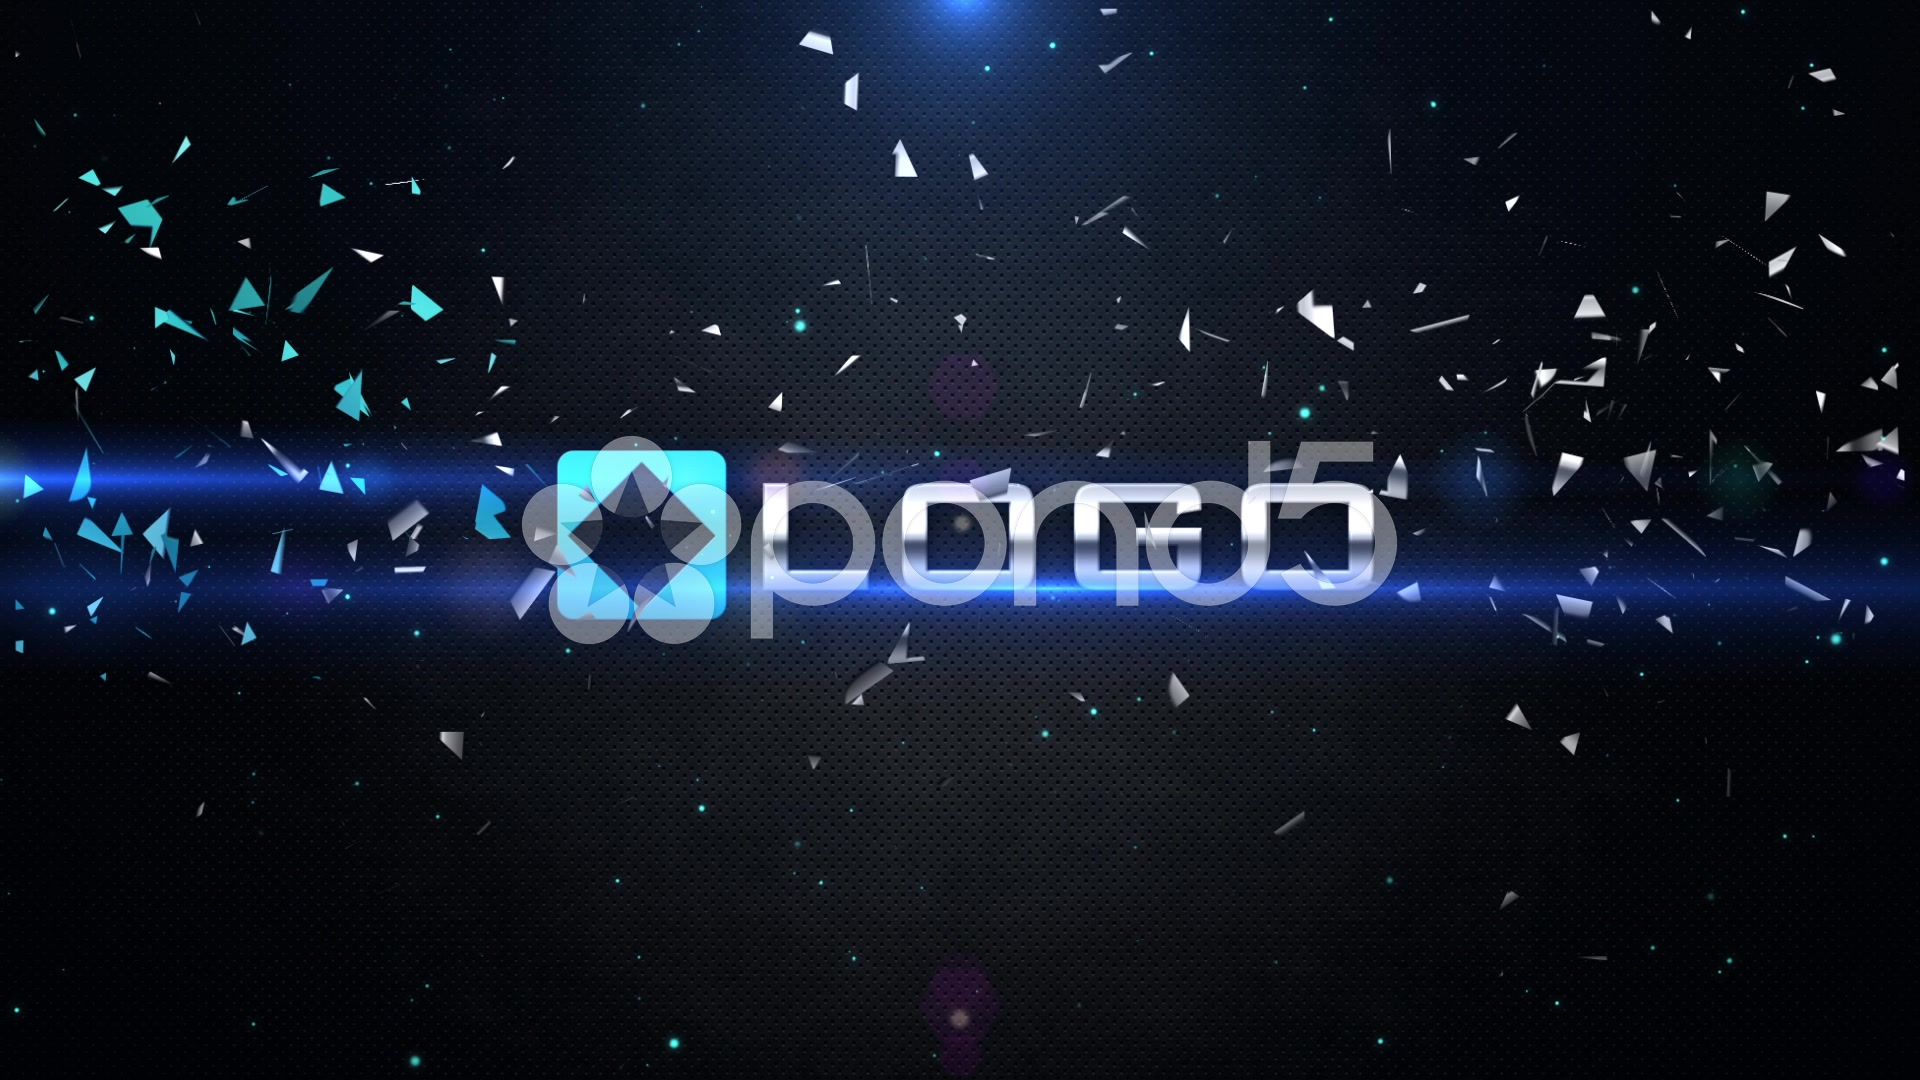 After Effects Project - Pond5 Dynamic 3D Logo Impact Shatter Particles Expl ...